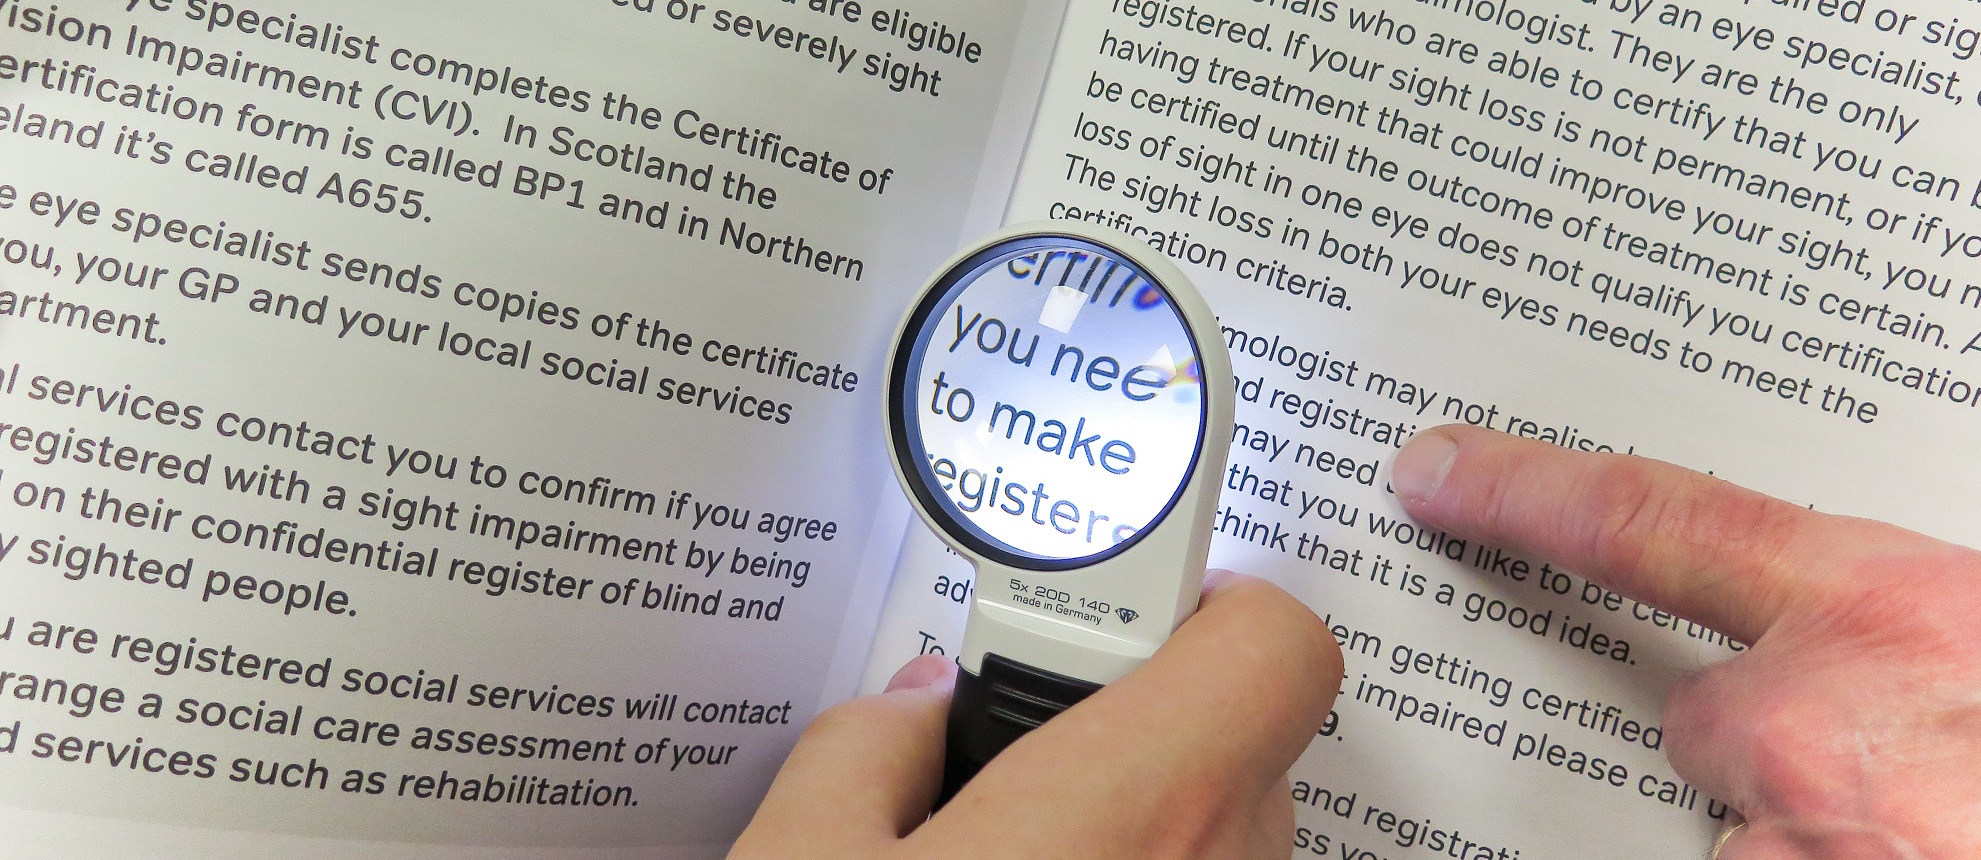 Image showing magnifier in use